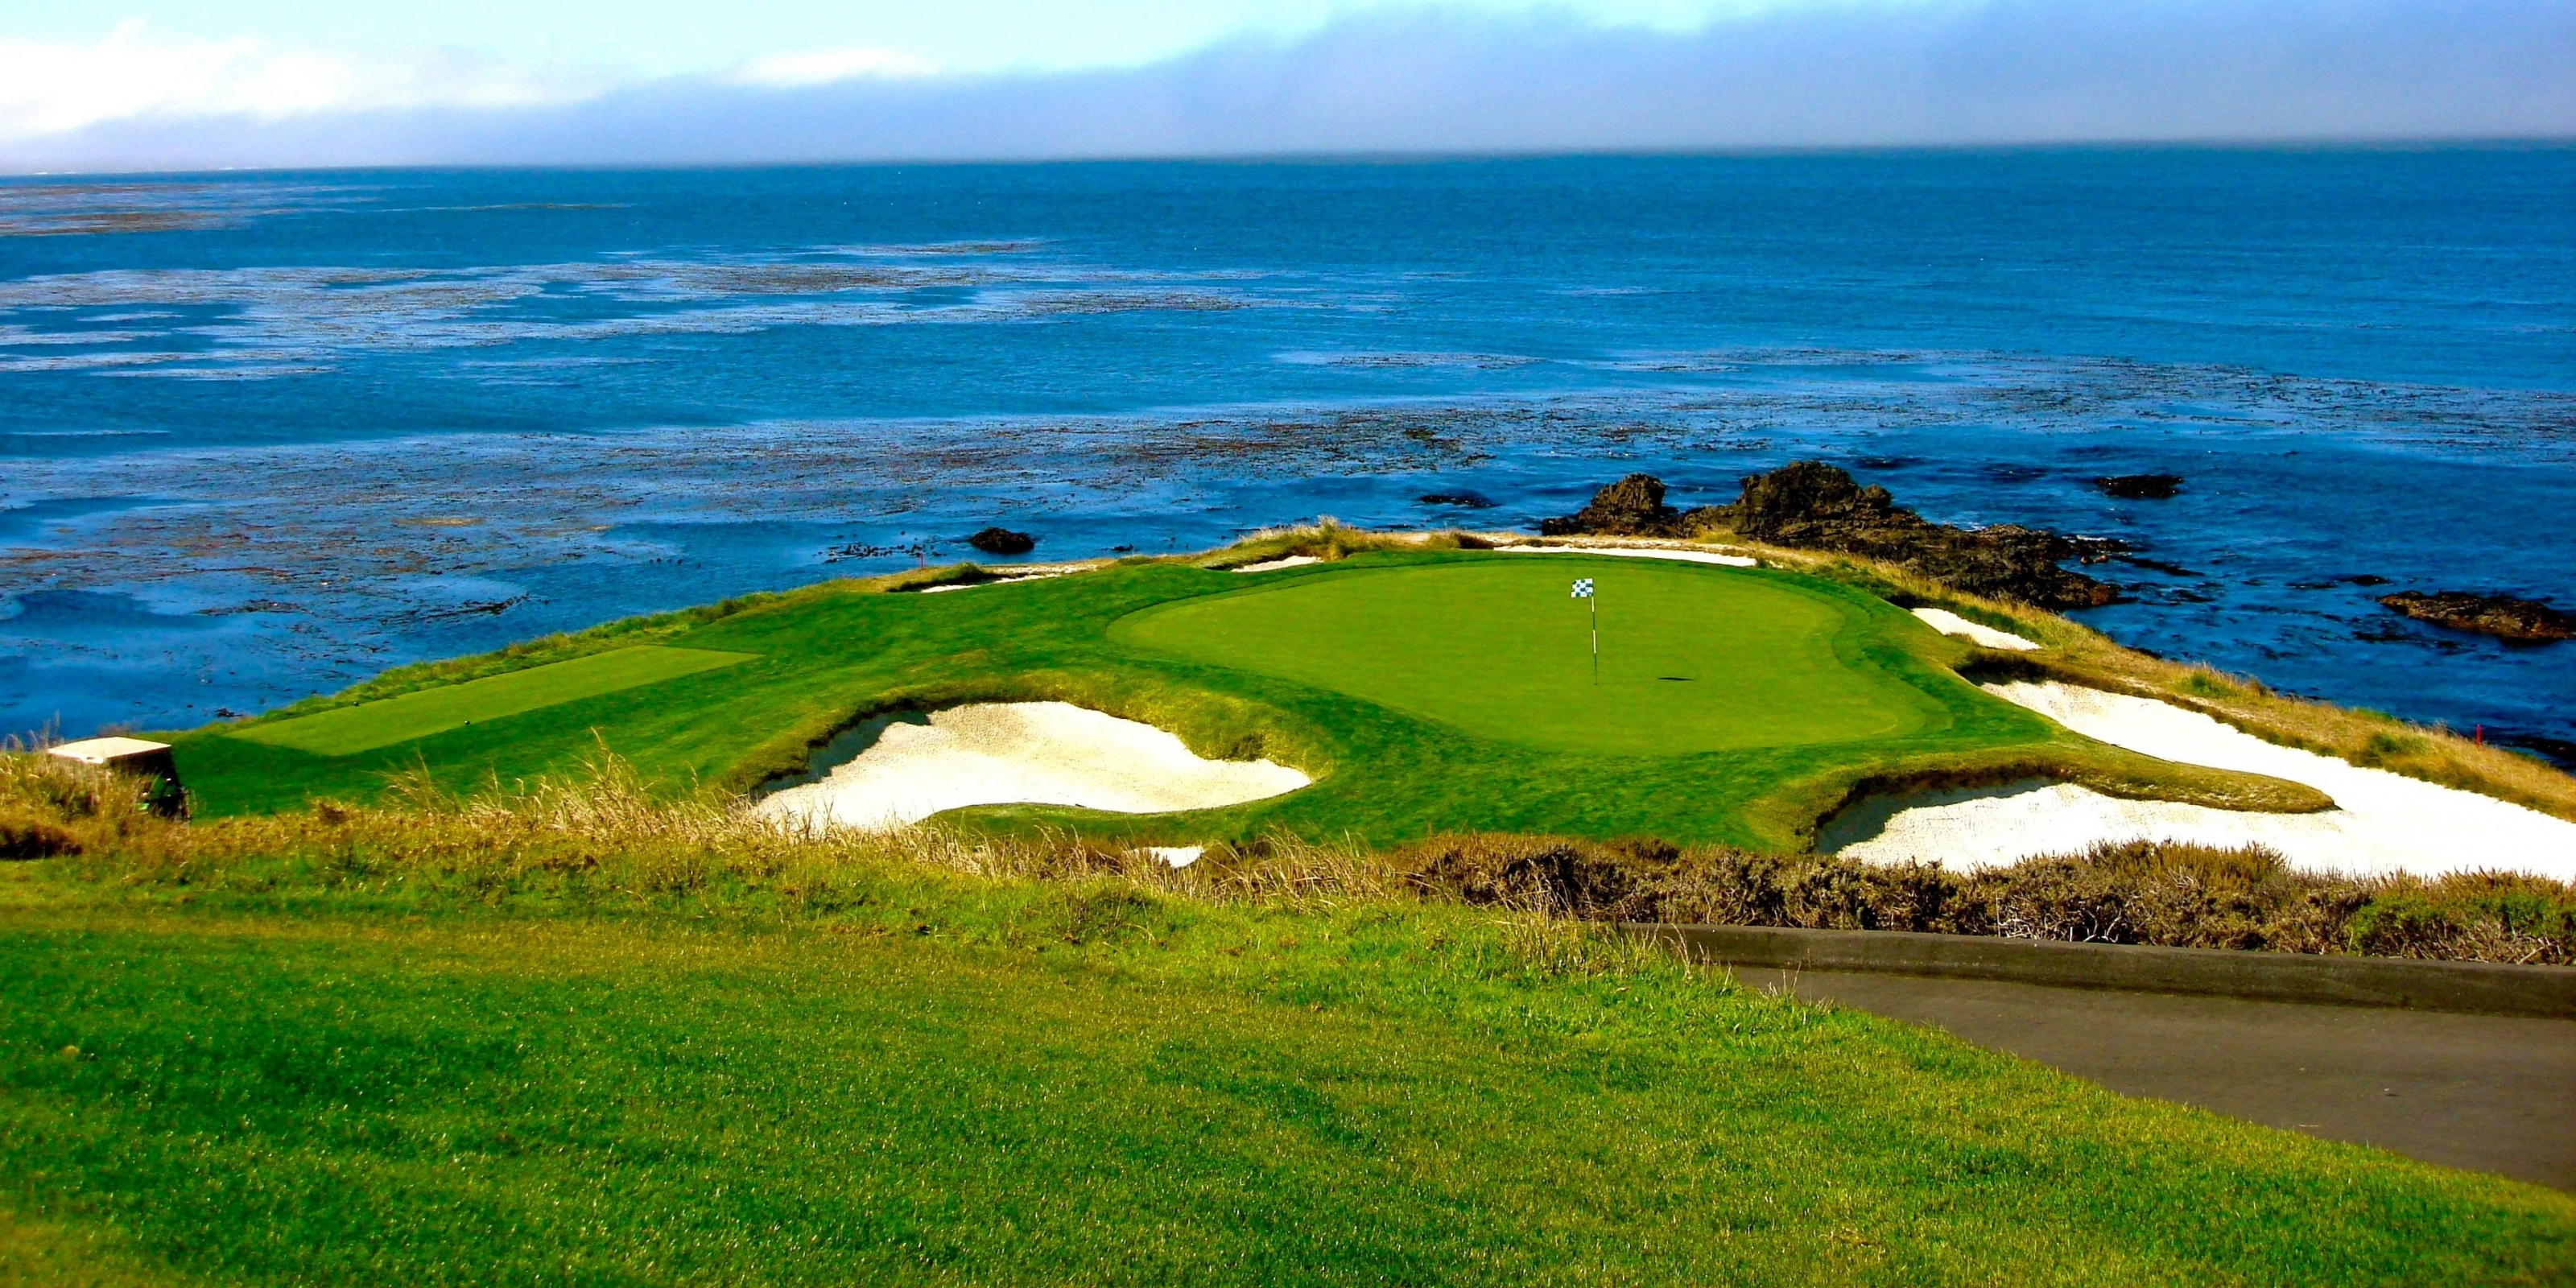 News from Pebble Beach:  Round 2 of U.S. Amateur